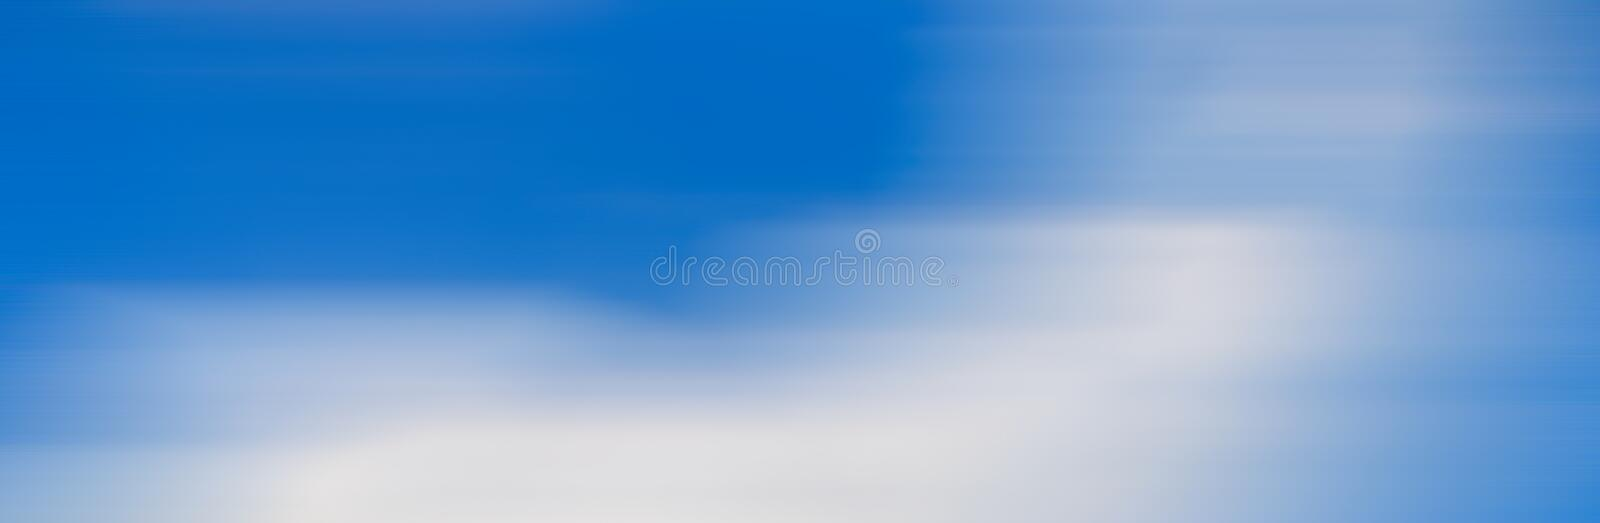 Motion blur effect of blue sky for background royalty free stock photos